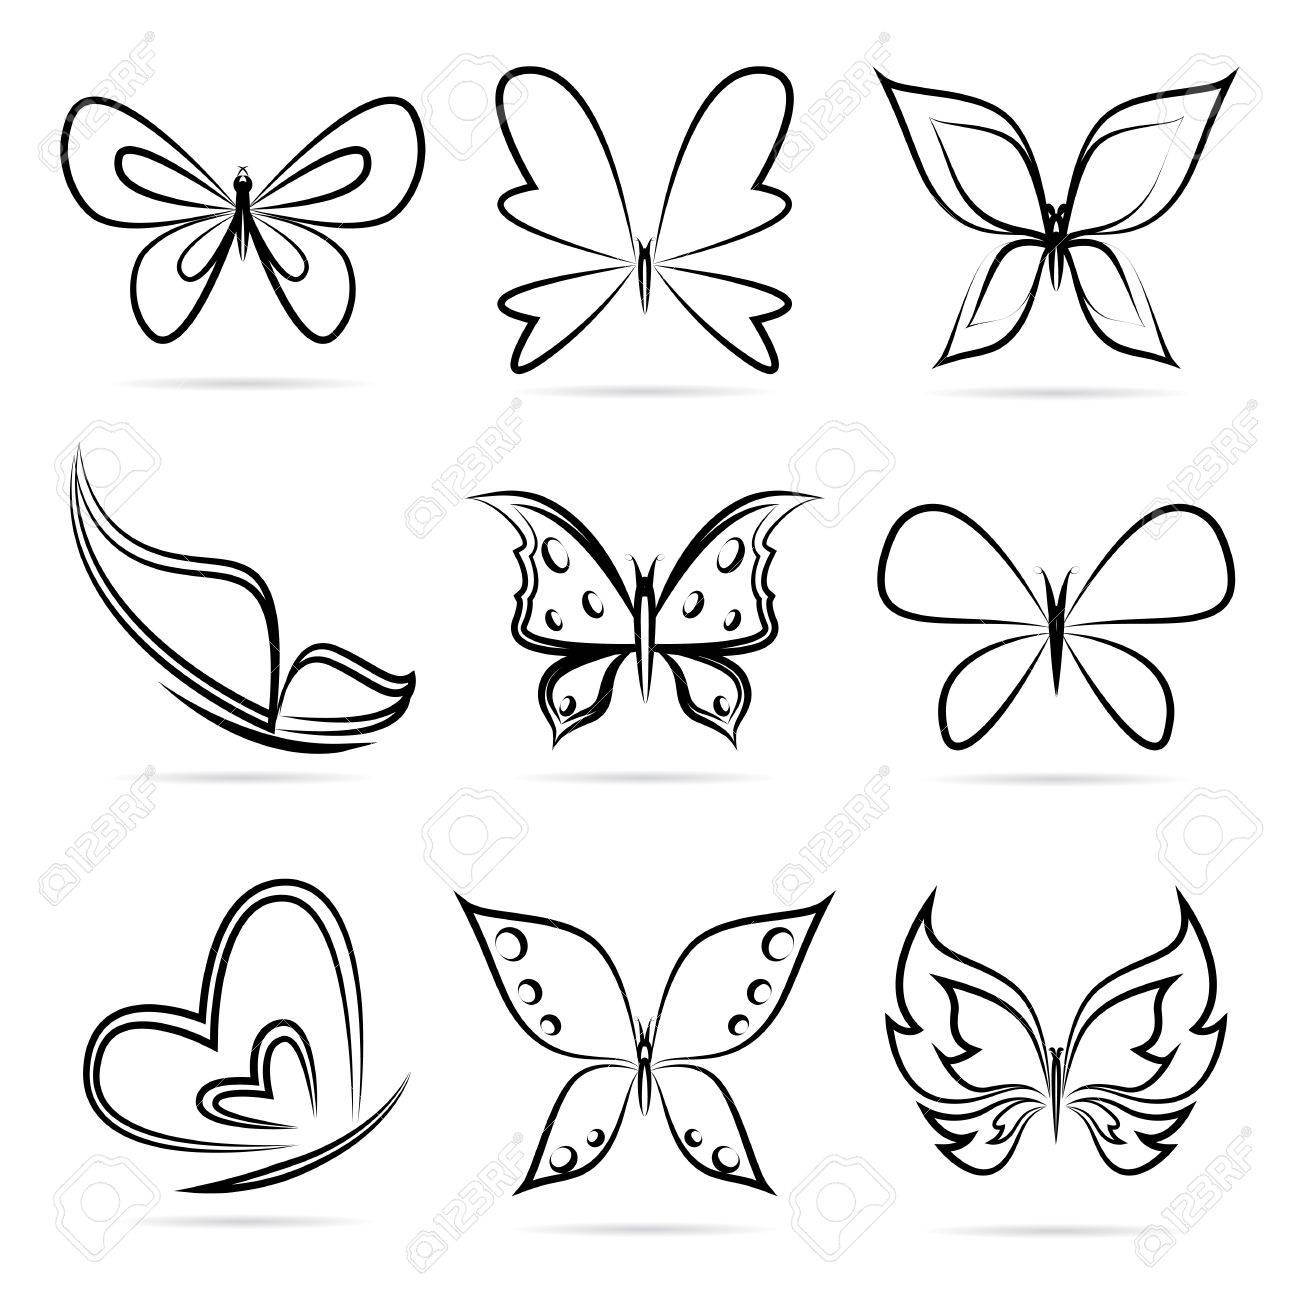 Vector Group Of Butterflies On White Background Royalty Free Cliparts Vectors And Stock Illustration Image 20875709